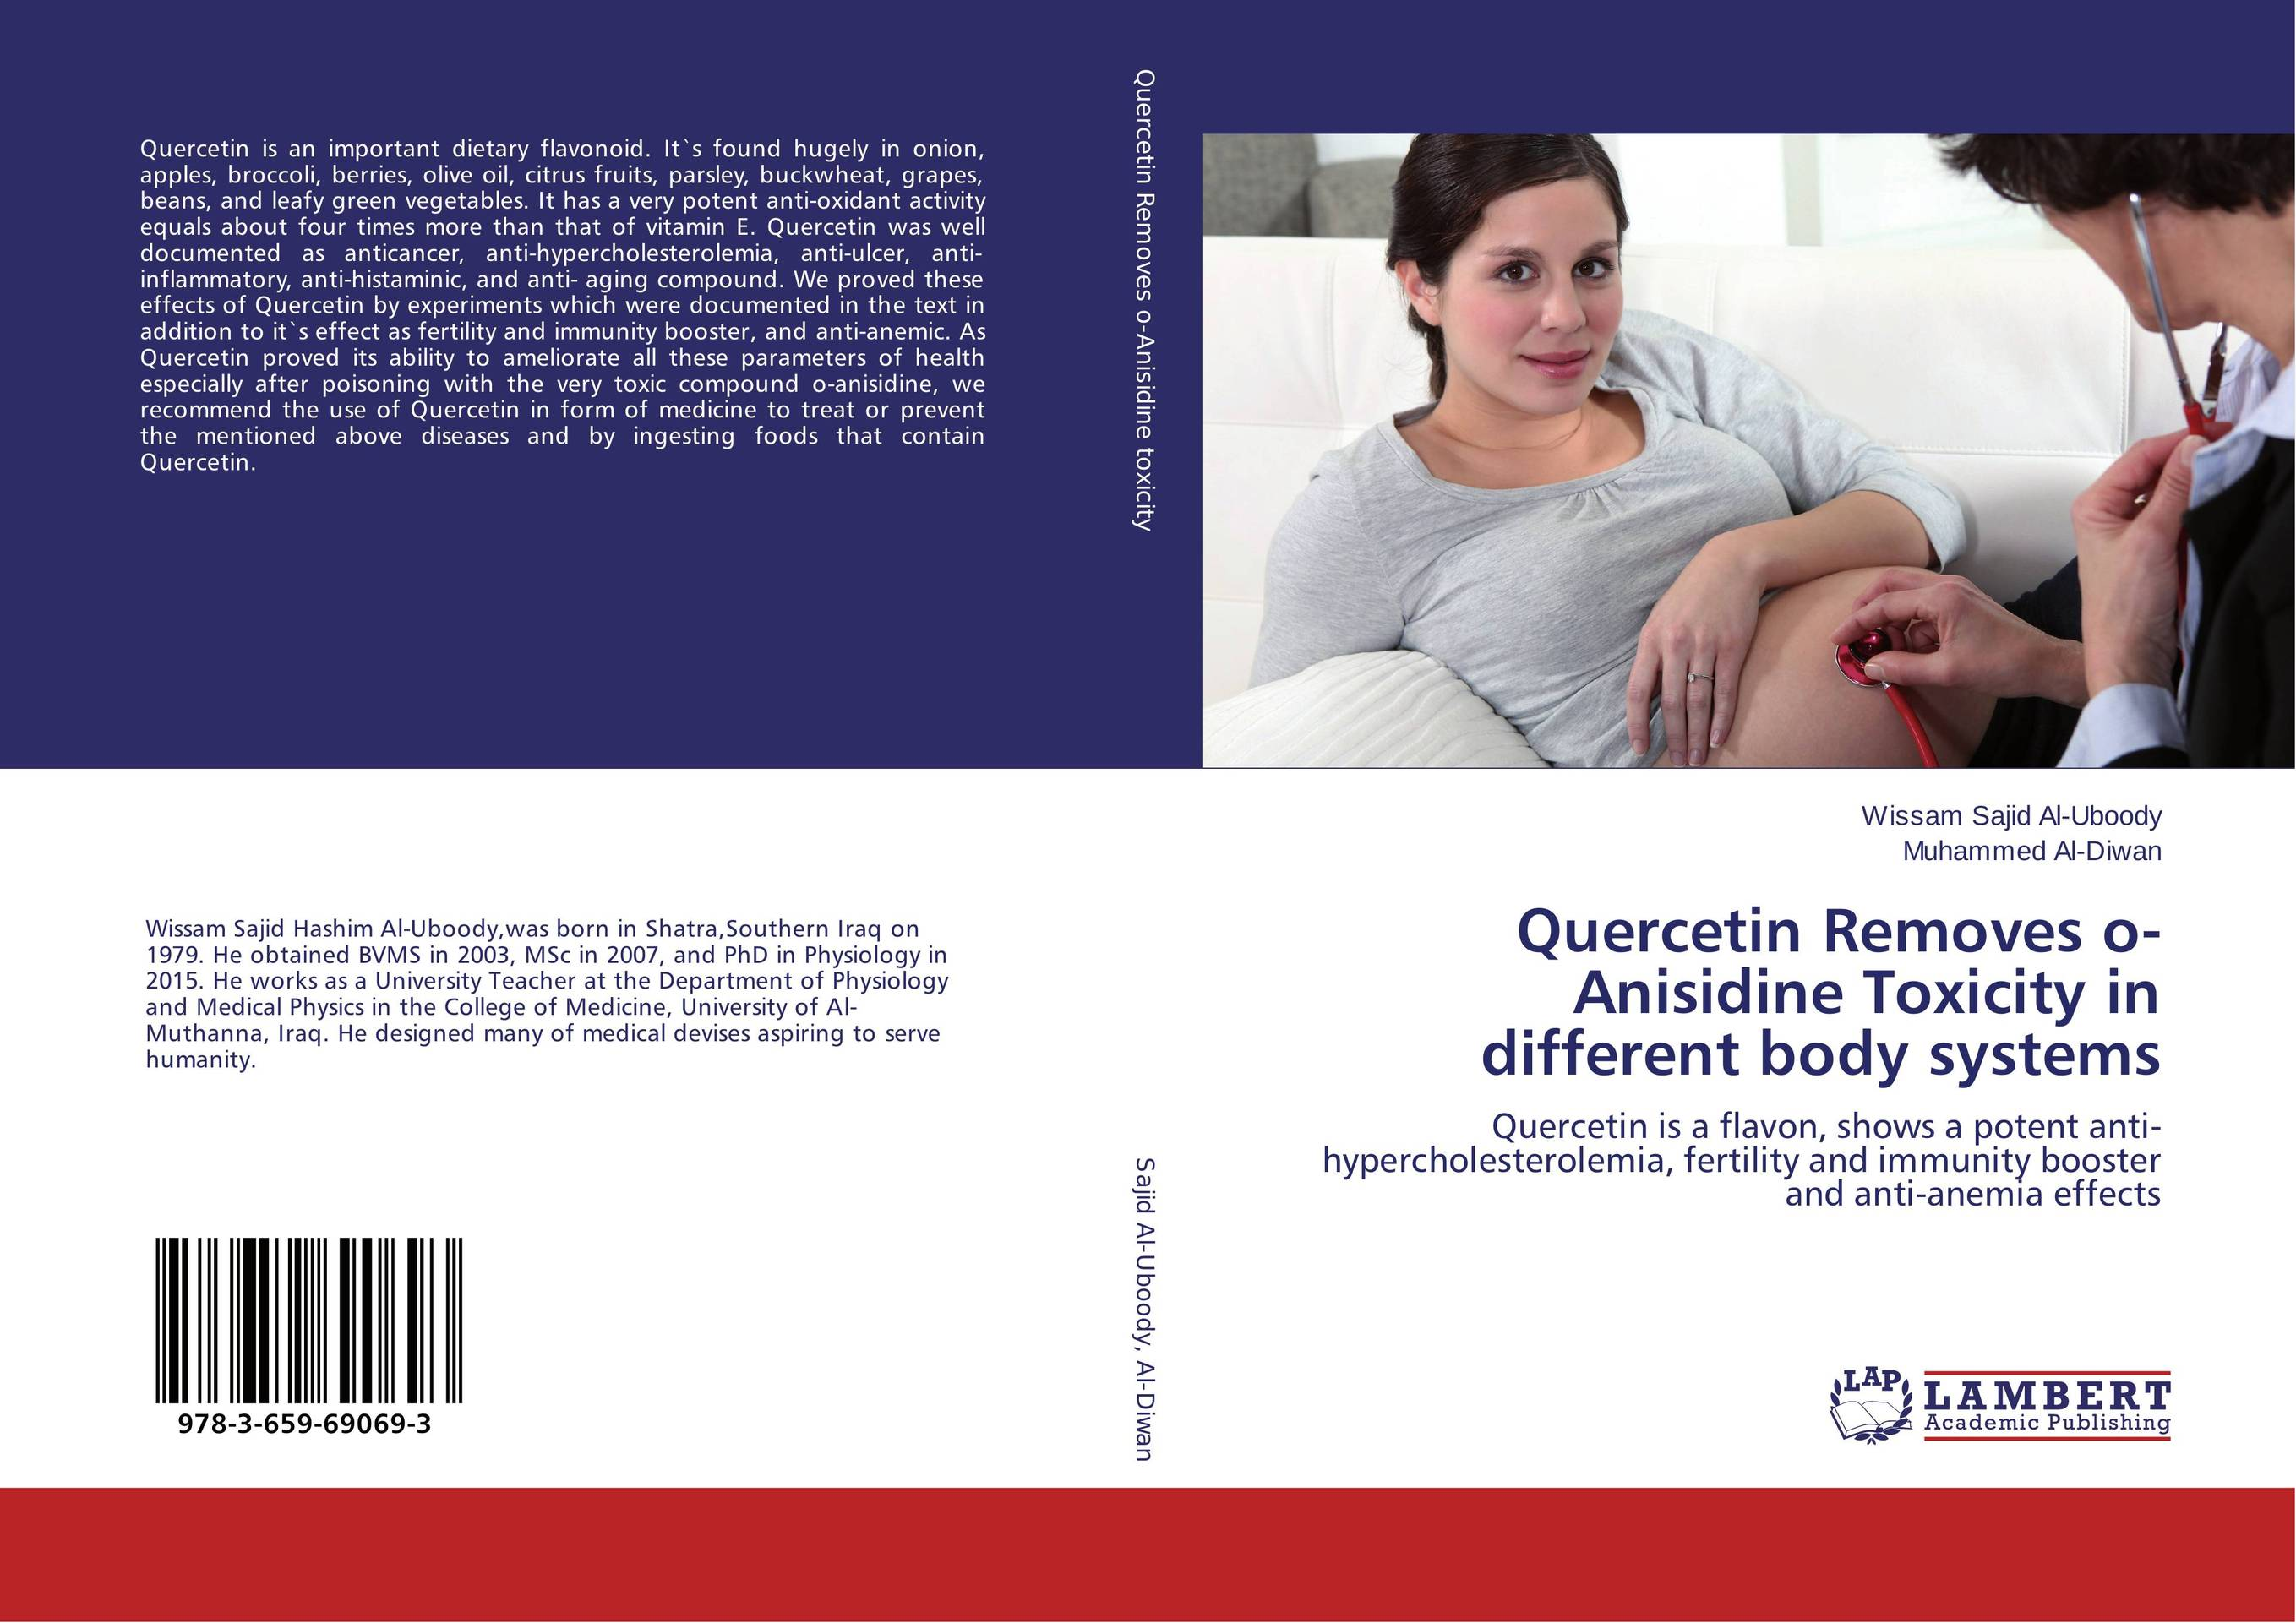 Quercetin Removes o-Anisidine Toxicity in different body systems inhibition of amylase by quercetin from zephyranthes candida